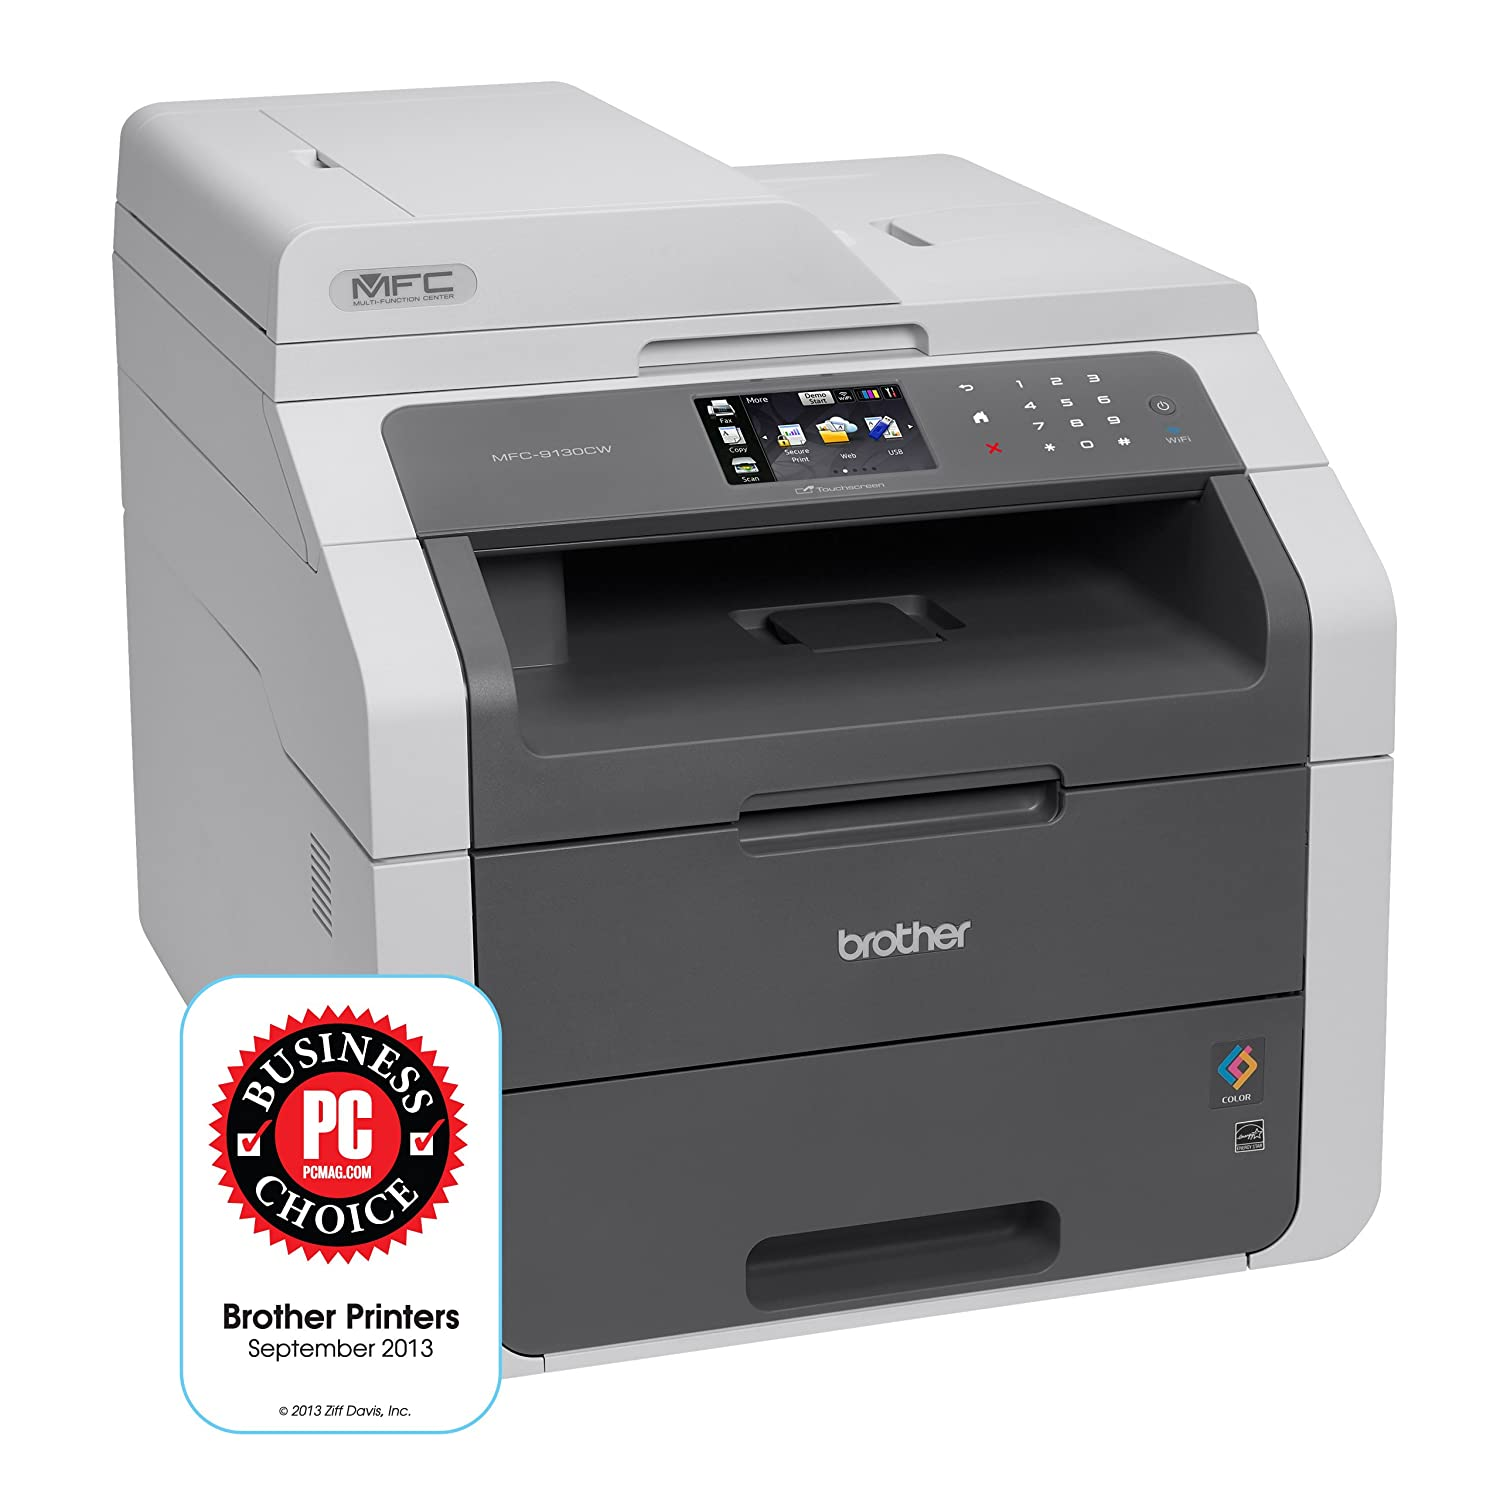 Color printing cost per page in india - Amazon Com Brother Mfc9130cw Wireless All In One Printer With Scanner Copier And Fax Amazon Dash Replenishment Enabled Electronics